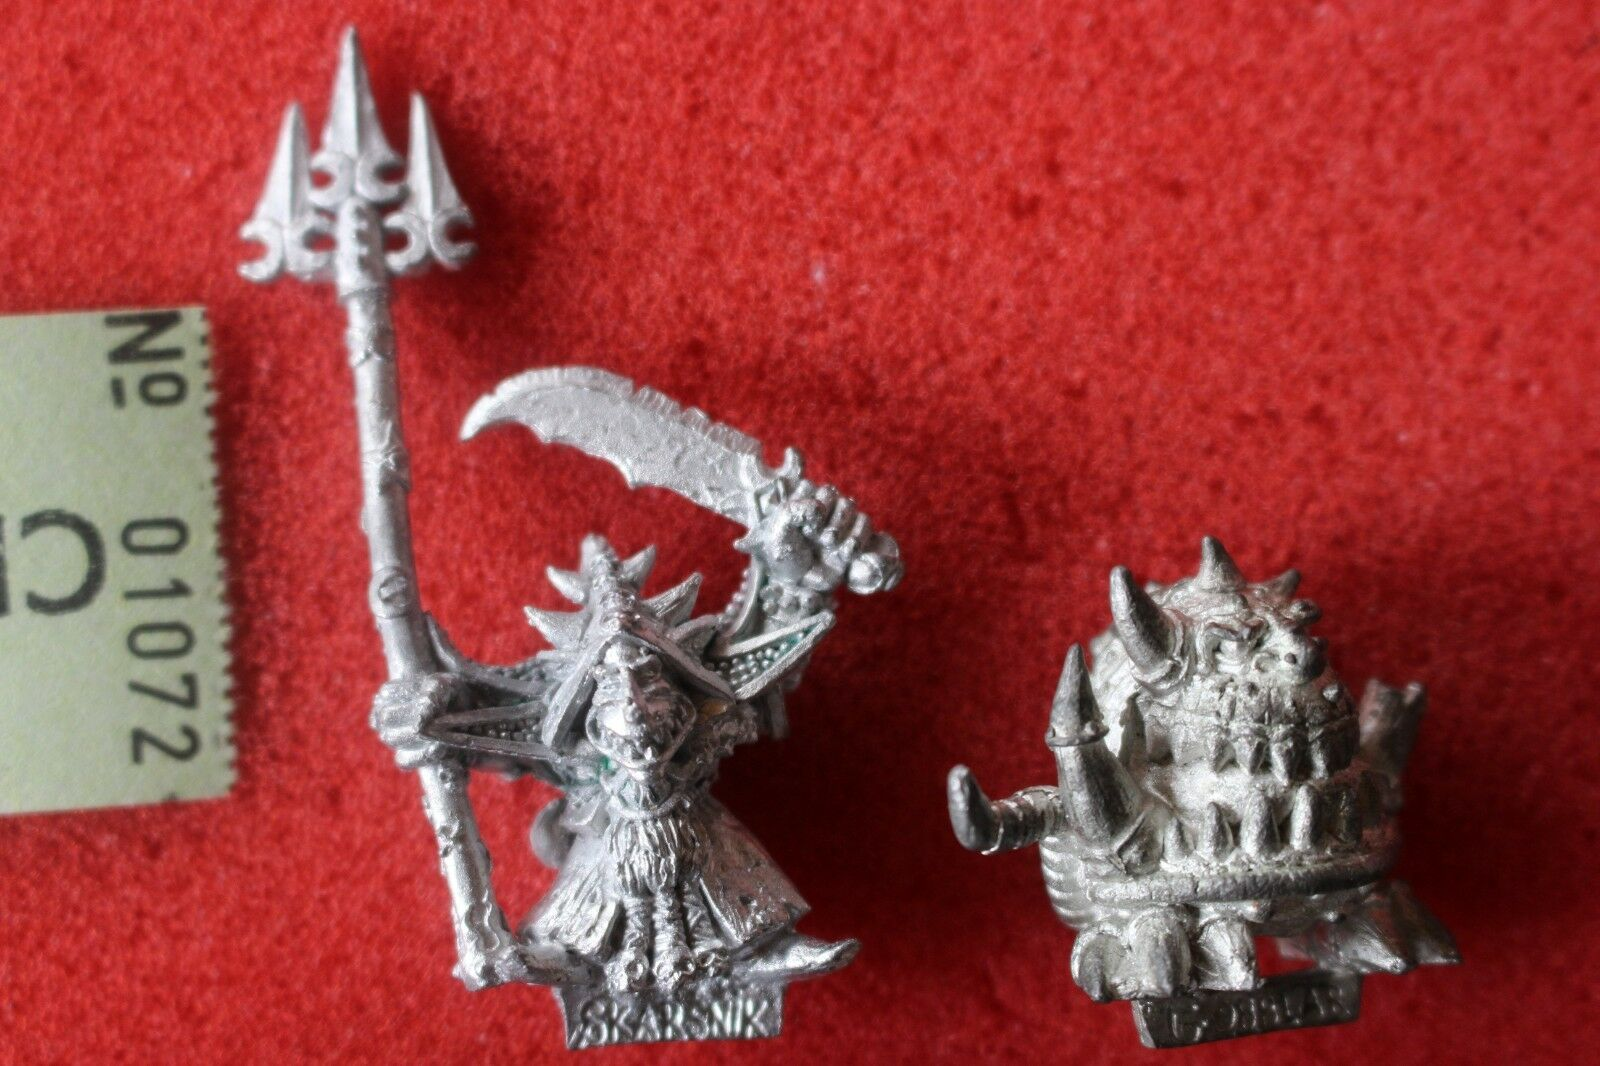 Games Workshop Warhammer Skarsnik and Gobbla Goblin Squig OOP Metal Orcs GW H3